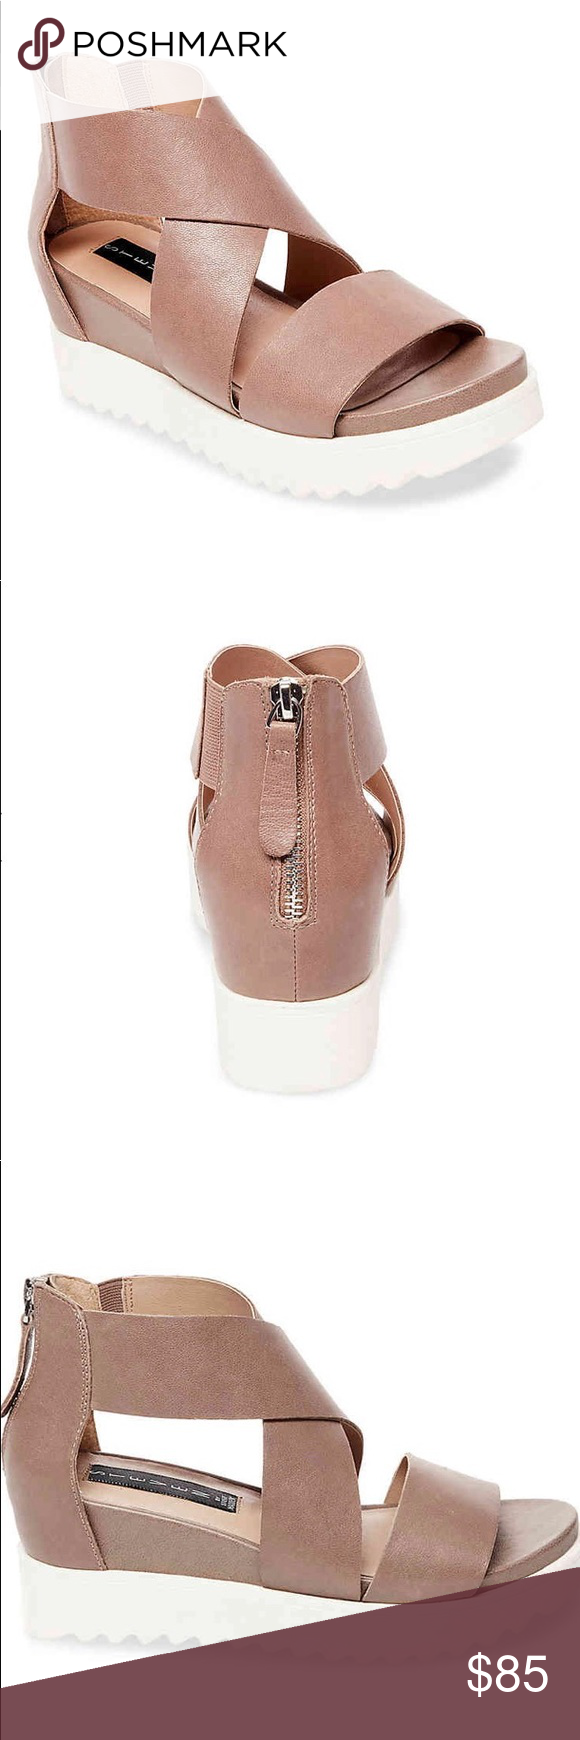 dfd9d6c2b55 Steve Madden Keanna wedge sandal Steve Madden Keanna wedge sandal now  available is different sizes with a price you can t pass up! Place your  order today!